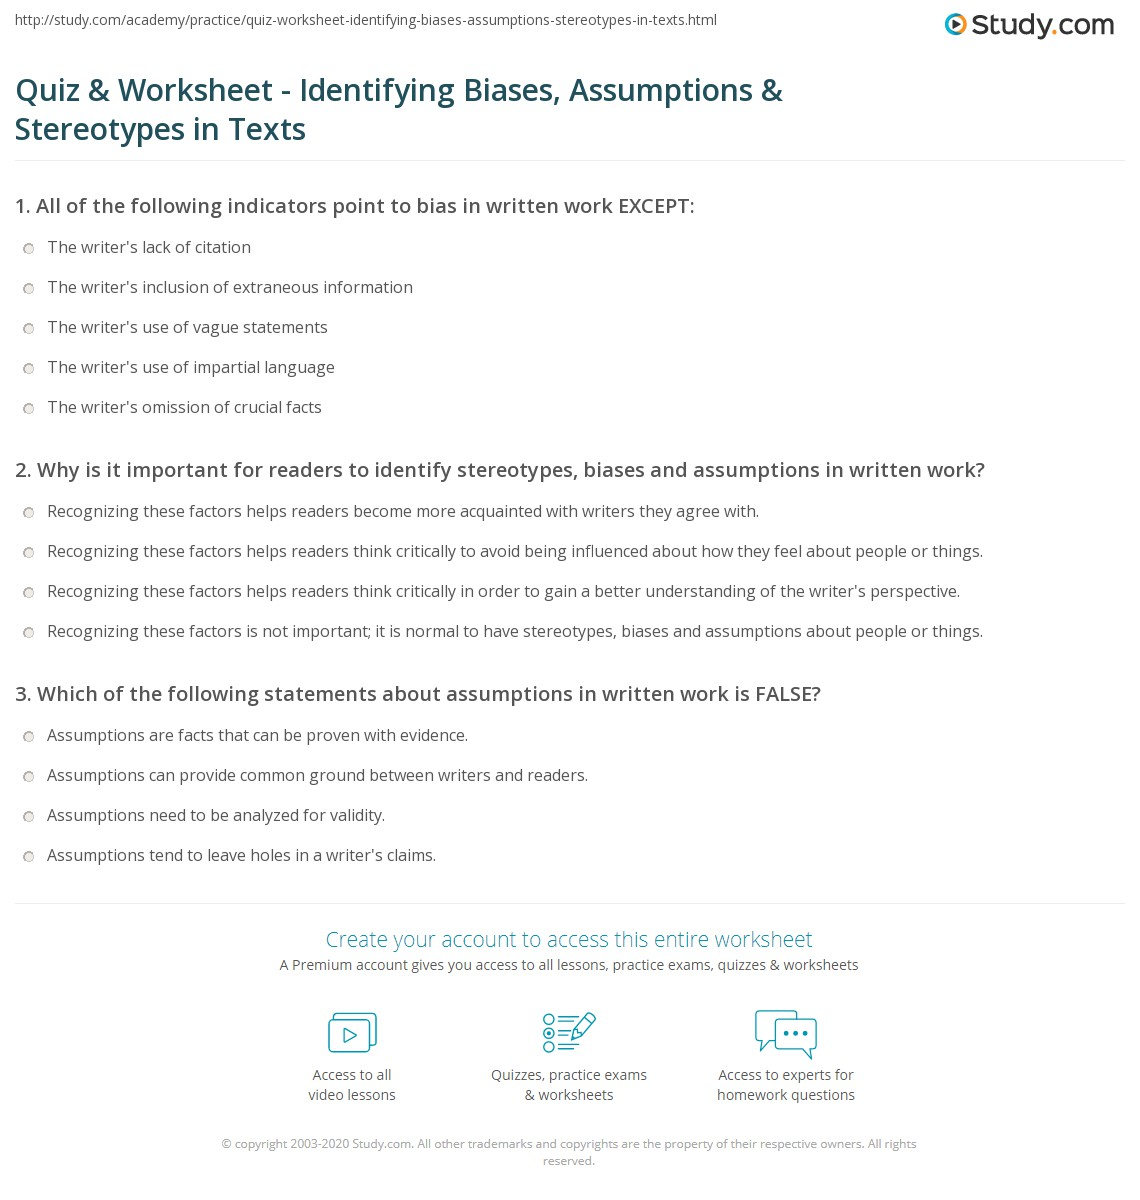 Printables Stereotype Worksheets quiz worksheet identifying biases assumptions stereotypes print recognizing in written works worksheet